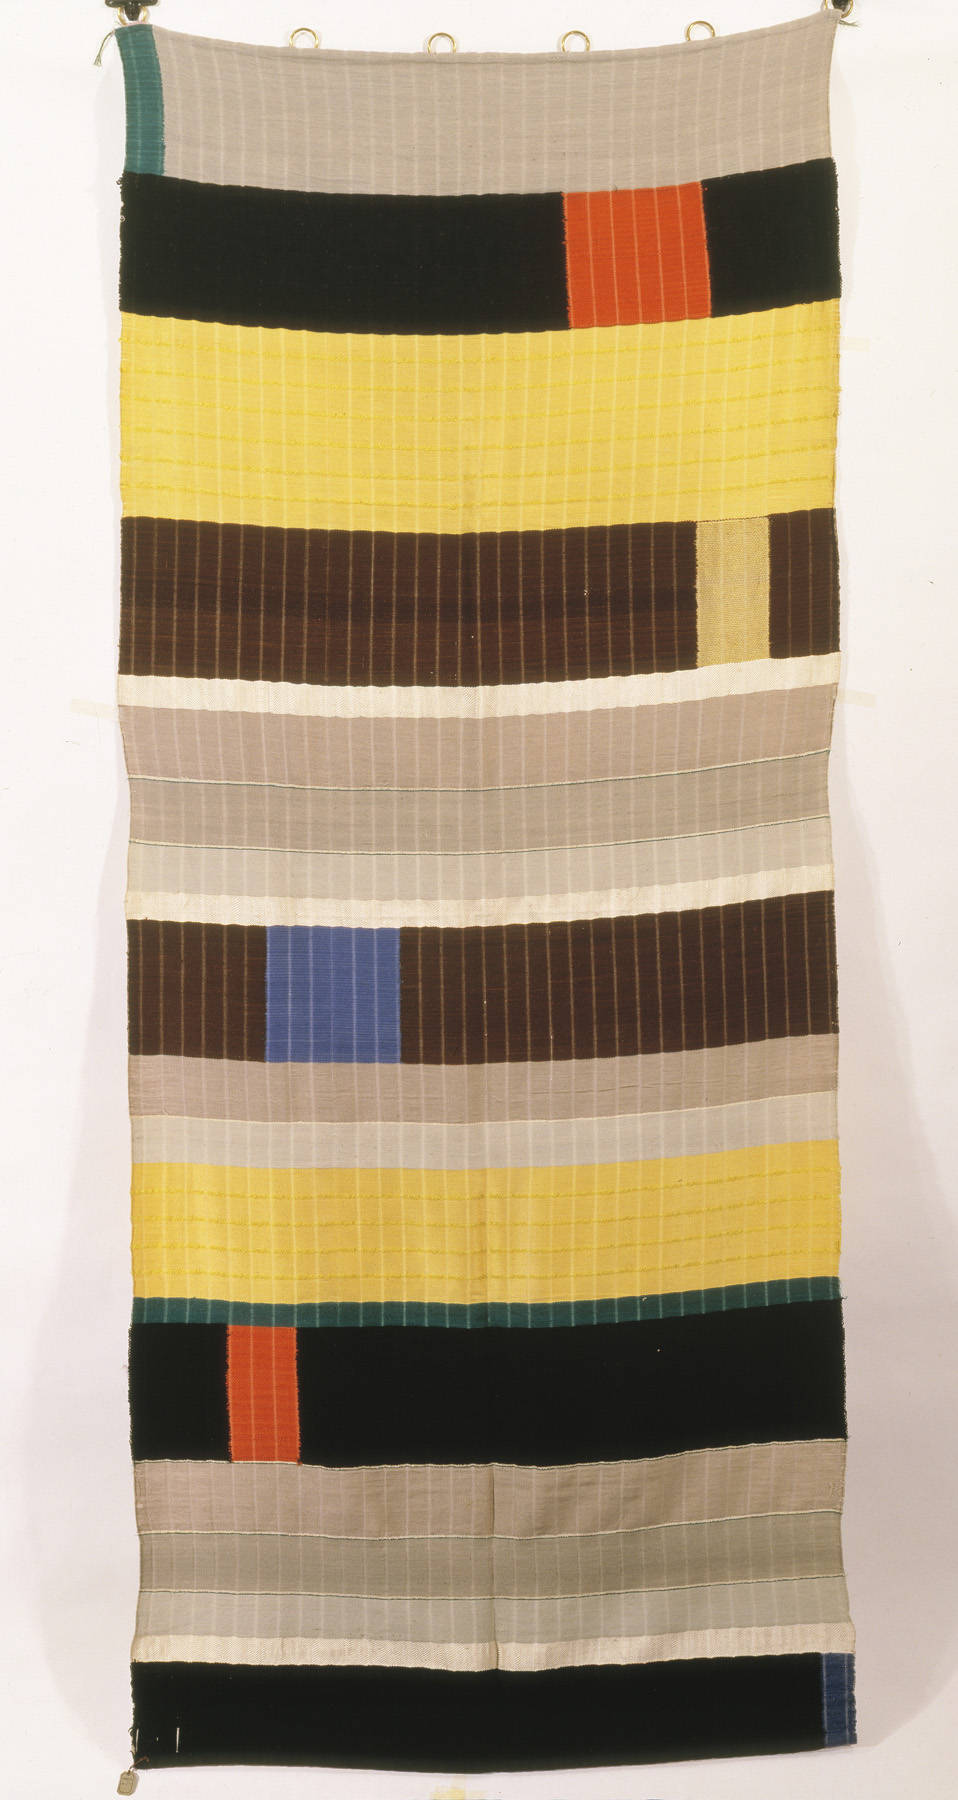 ANNI ALBERS WALL HANGING, wool and silk, 1925 (Die Neue Sammlung Staatliches Museum für angewandte Kunst, Munich ©2008 The Josef and Anni Albers Foundation / Artists Rights Society (ARS), New York)